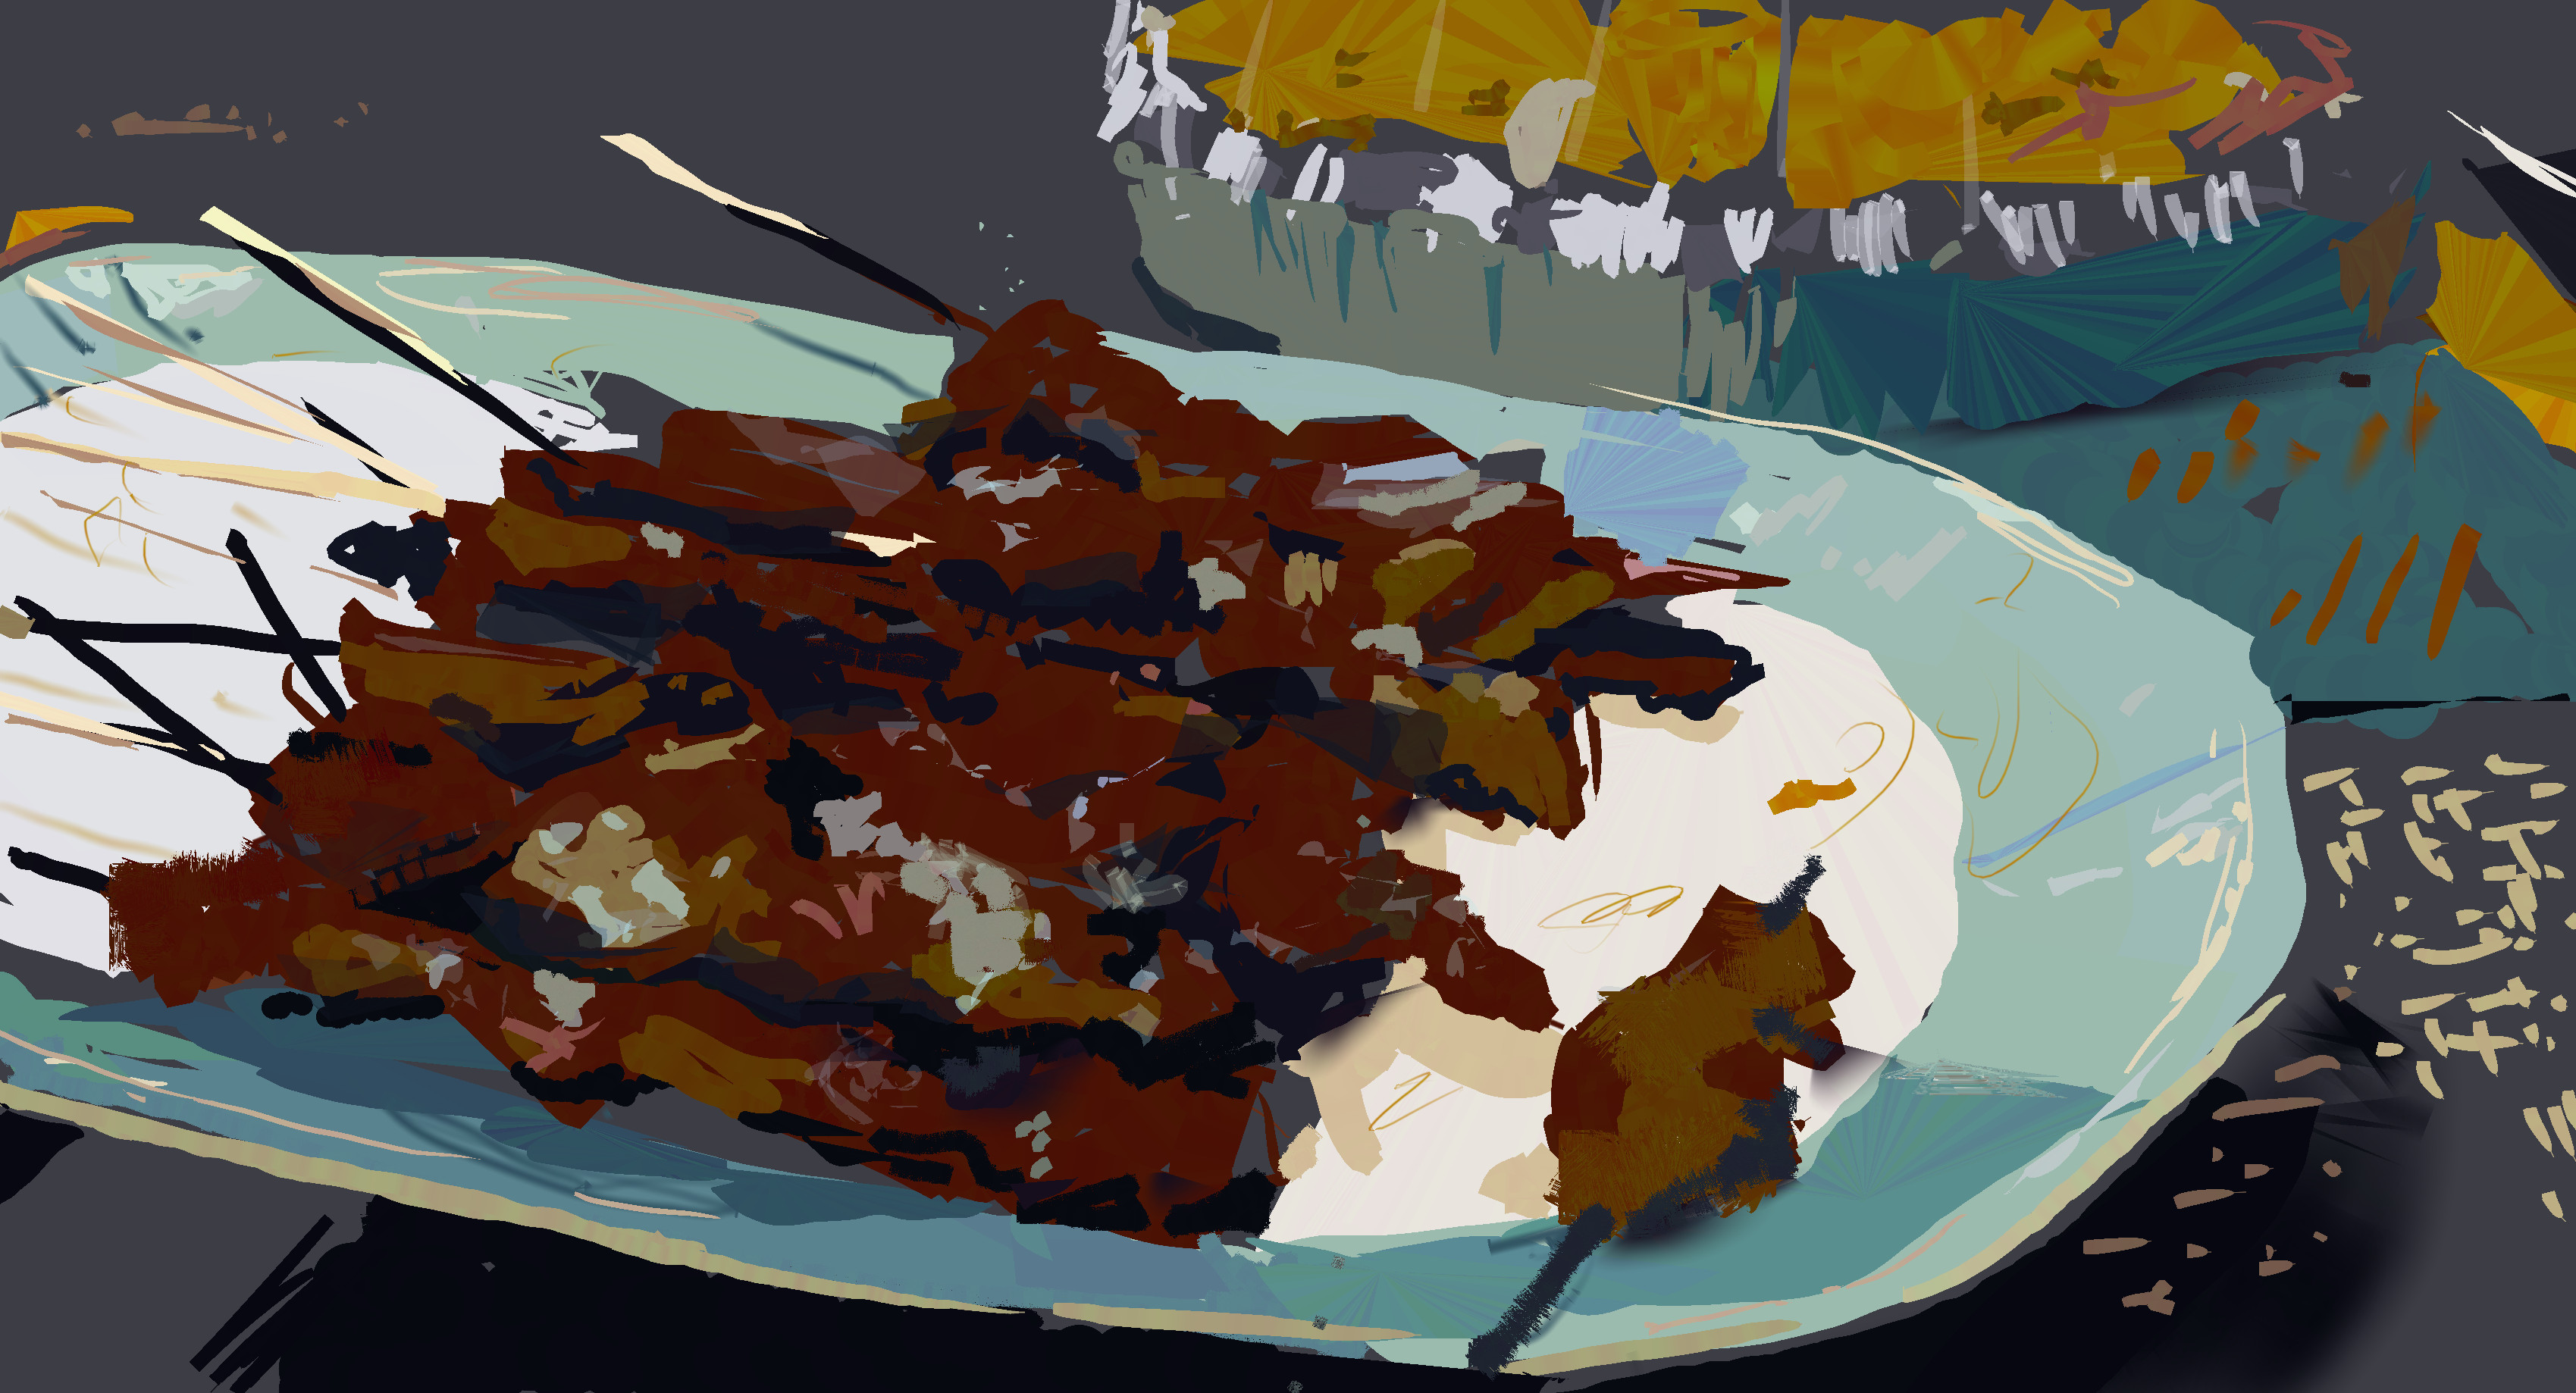 Thanksgiving Skewers. Painted from life.